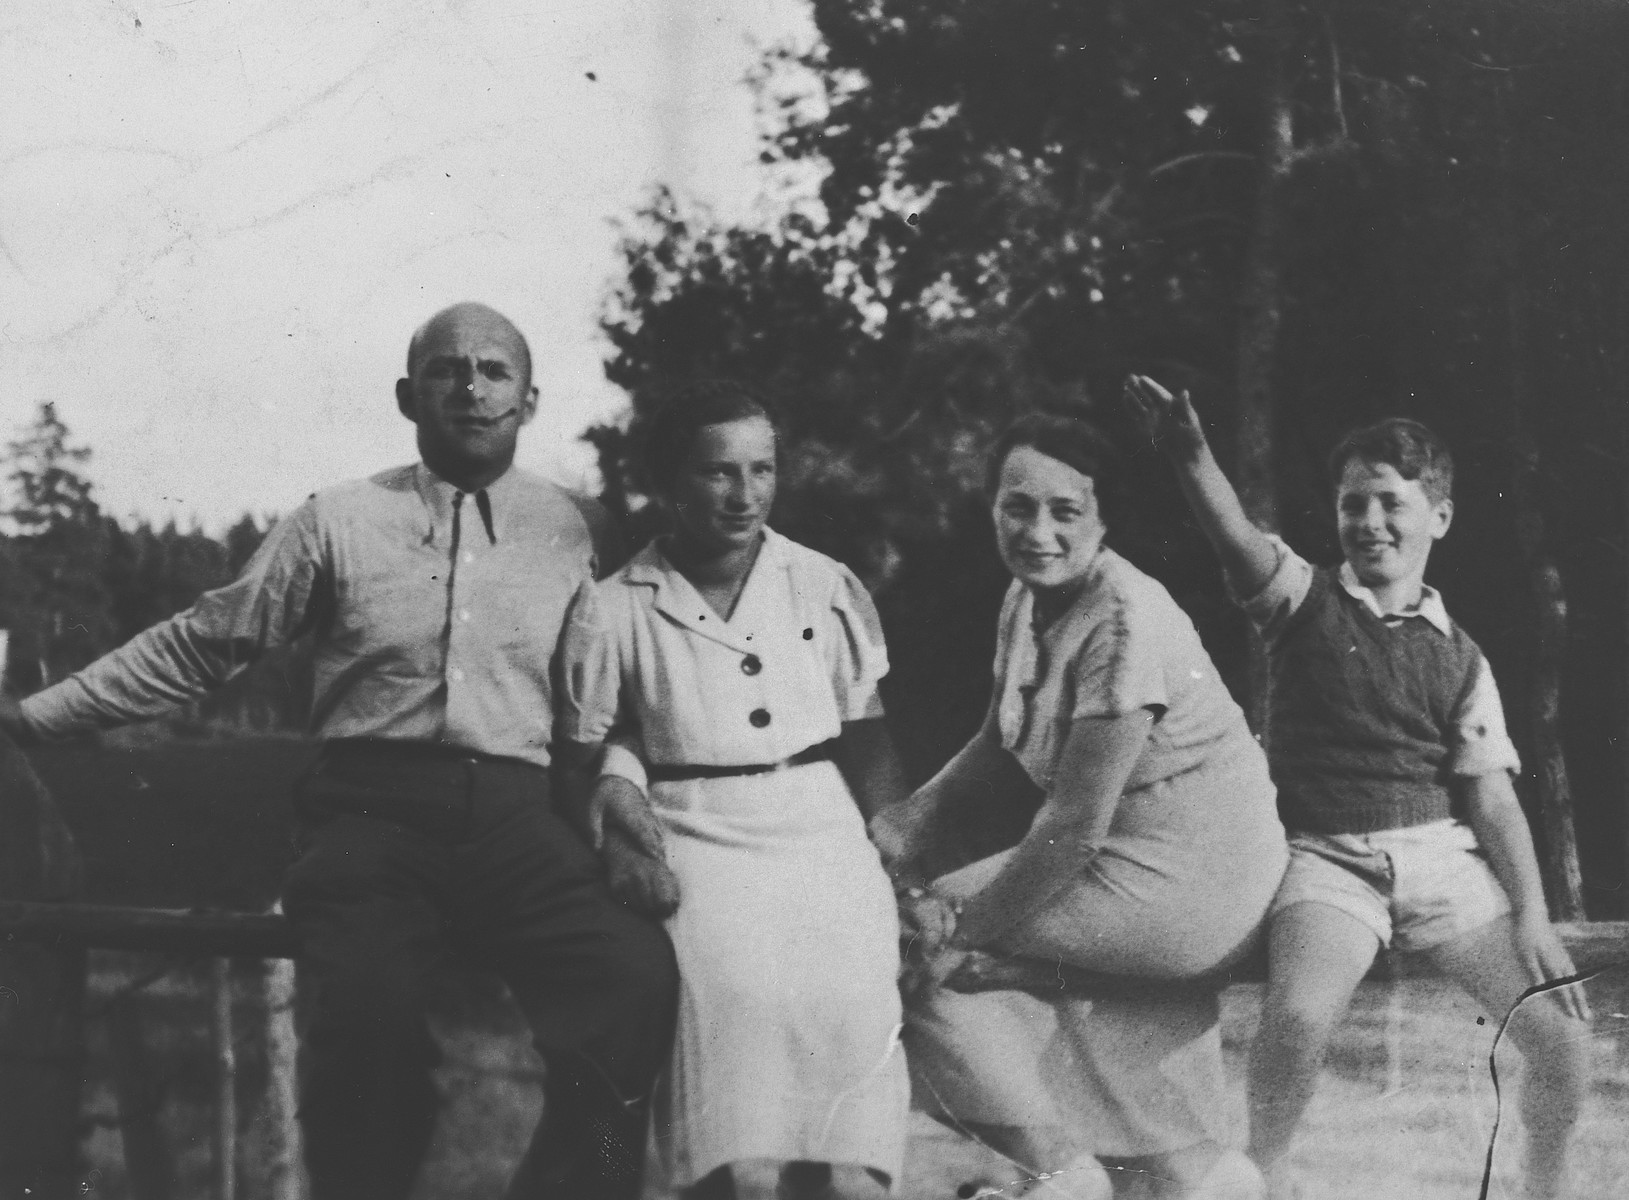 A Jewish family from Vilna sits on a railing while on an outing.  Pictured from lef tto right are David, Emilia, and Henrietta Zeldowicz and Alik Abramowicz.  Arik Abramowicz perished during the Holocaust.